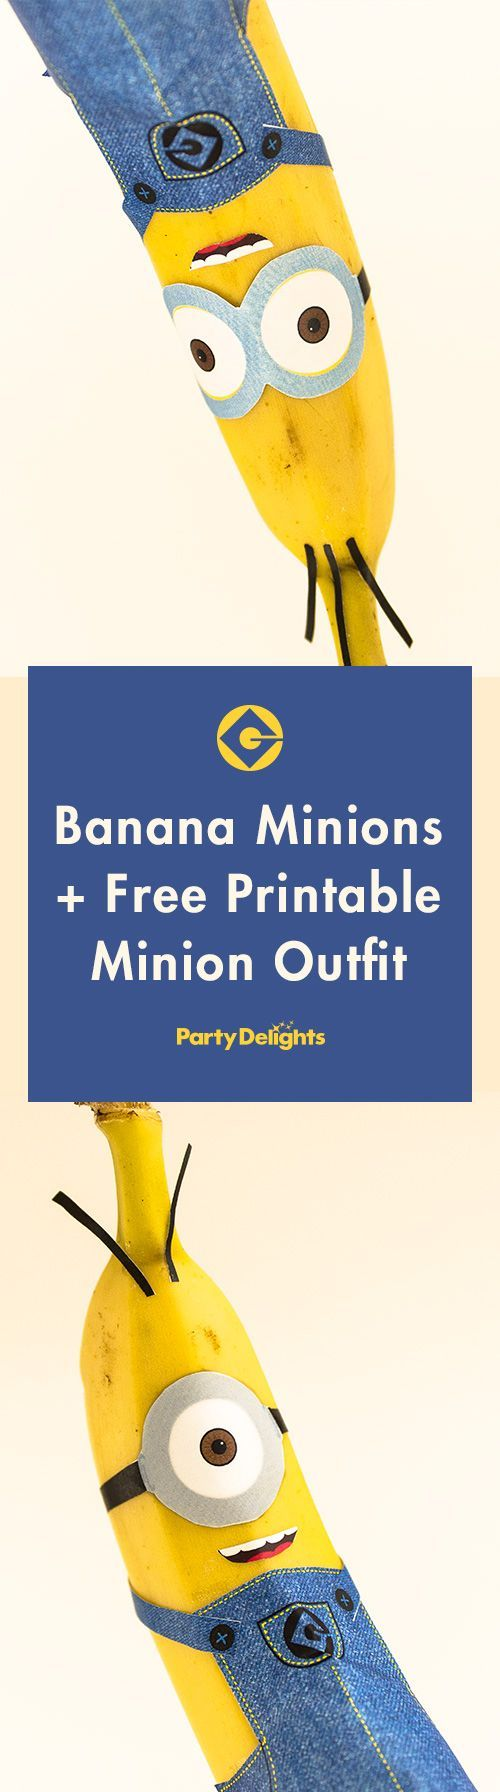 Download our free printable minion outfits to make these adorable banana minions! Perfect for a minion birthday party or a lunch box surprise! Visit http://blog.partydelights.co.uk for even more fun party ideas for kids.